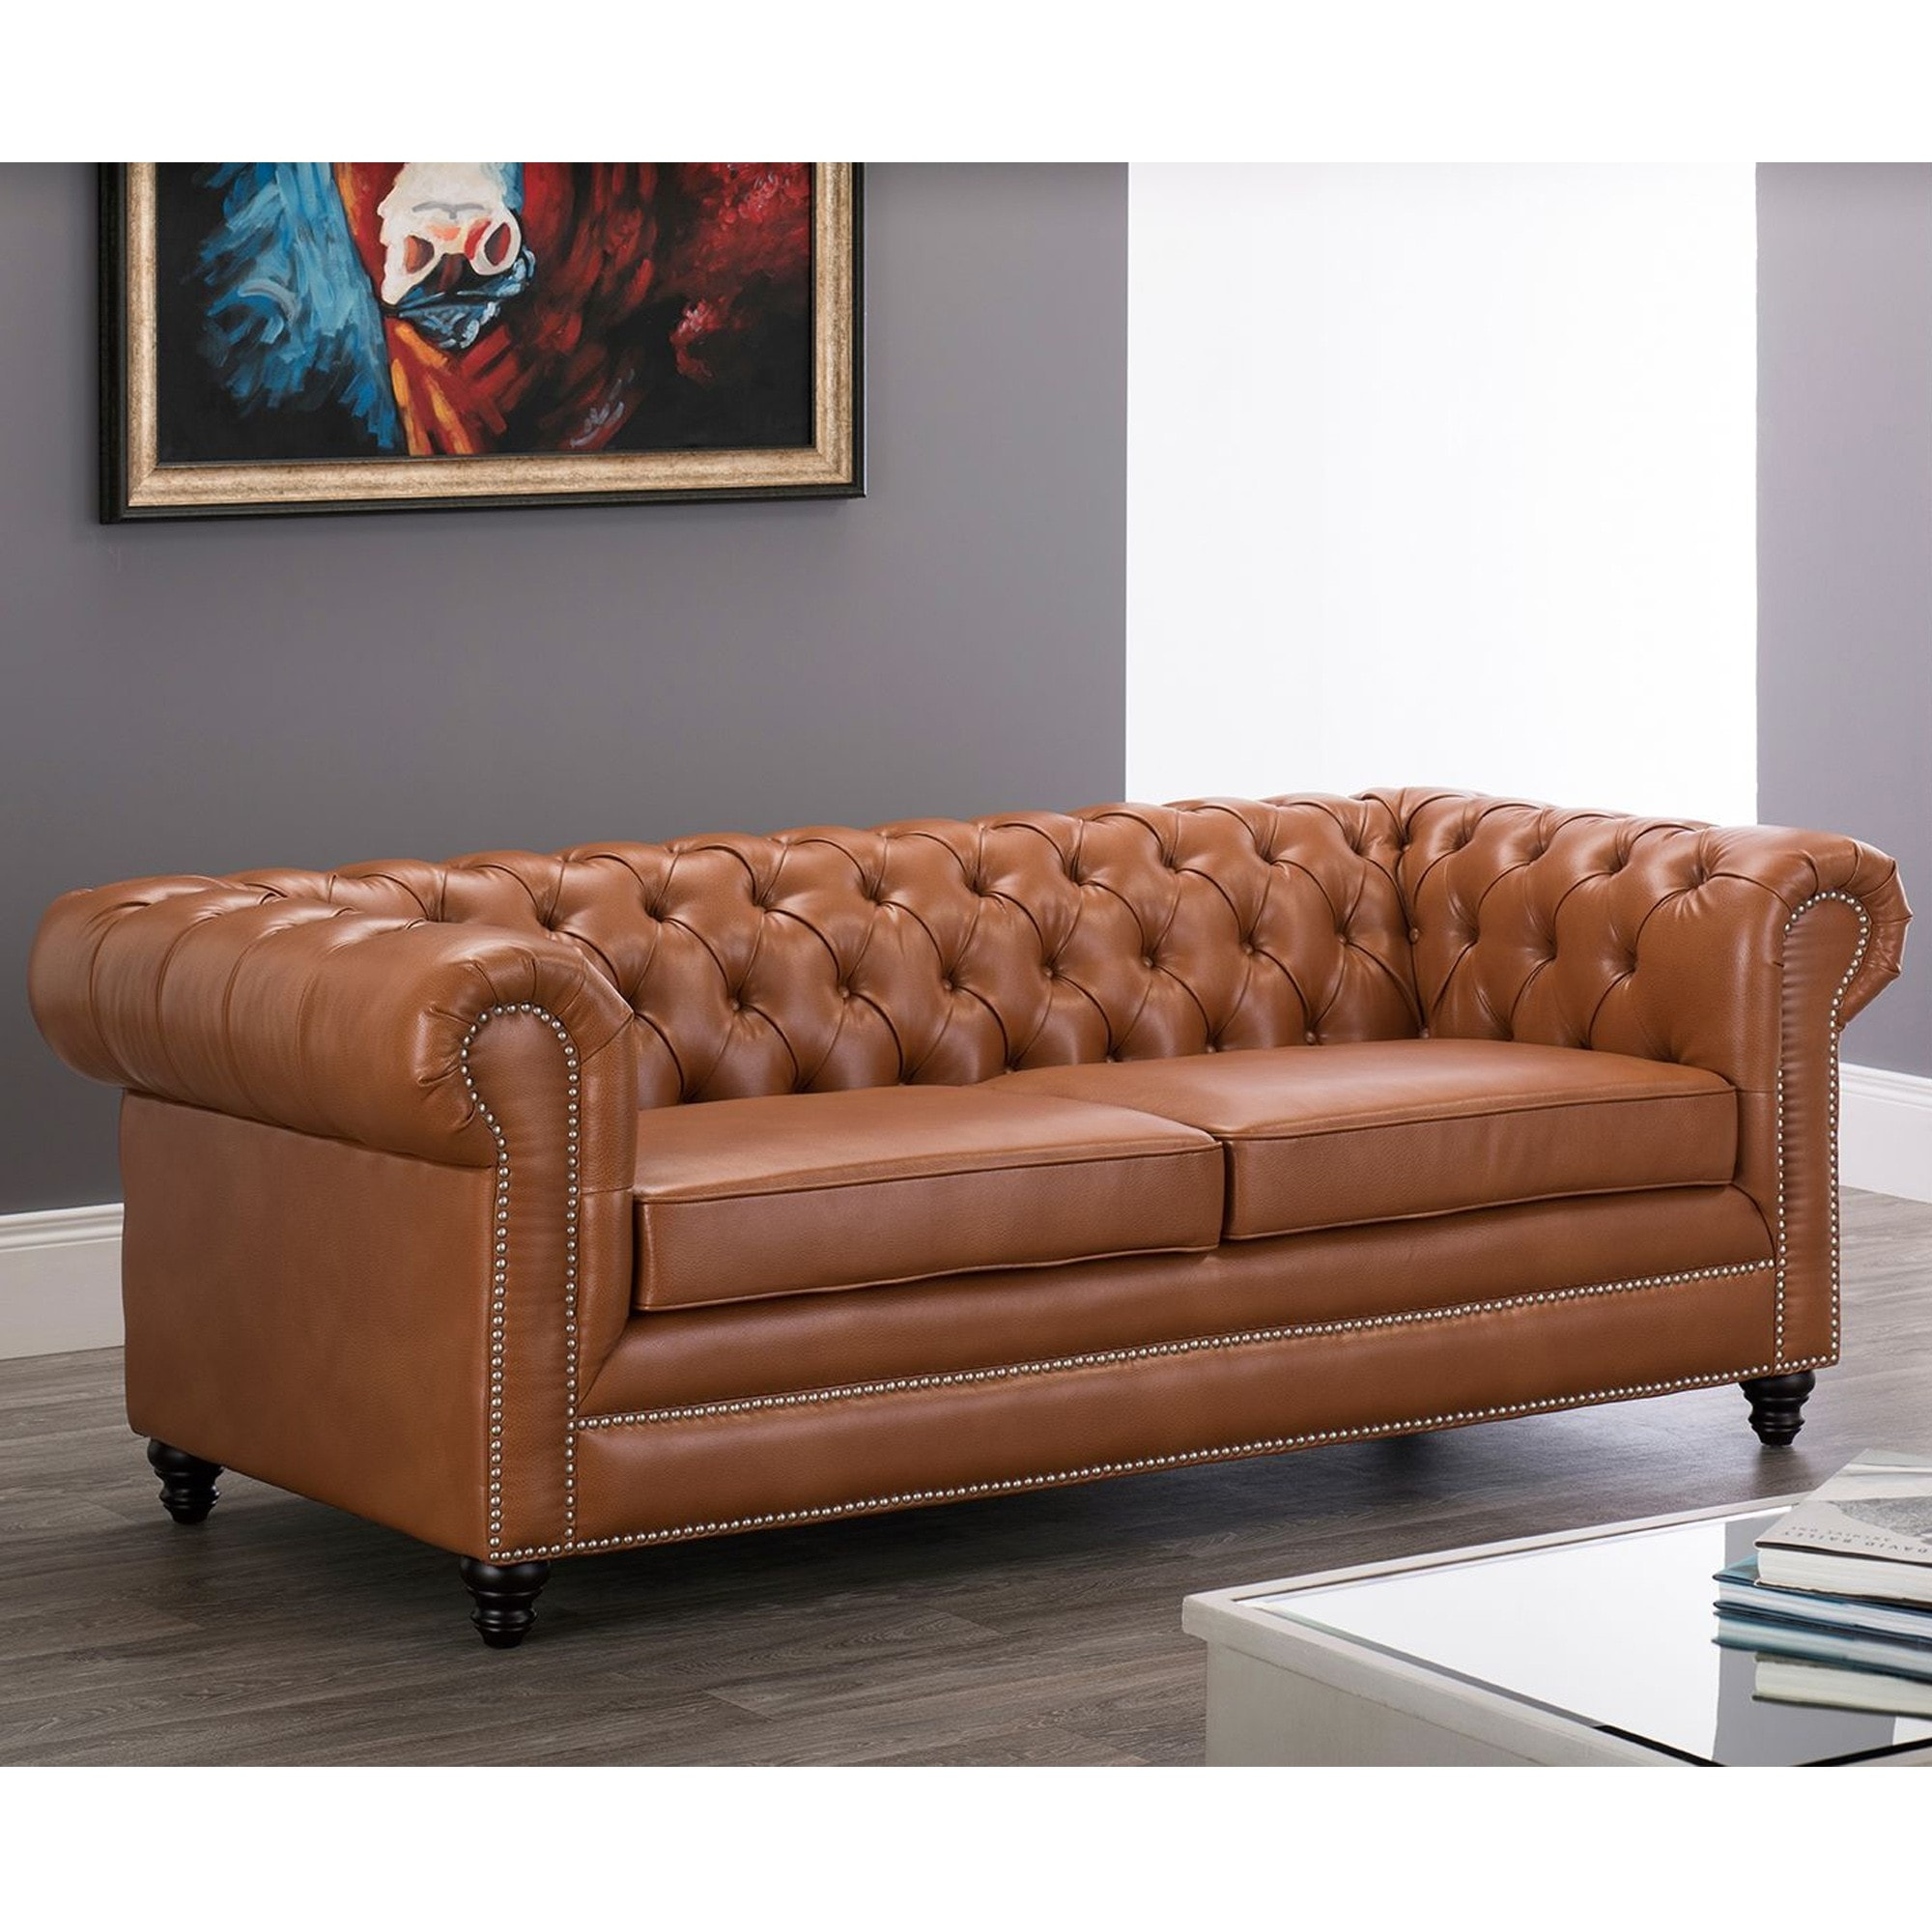 - Faux Leather Chesterfield 3 Seater Sofa-Tan Tan Chesterfield Sofa